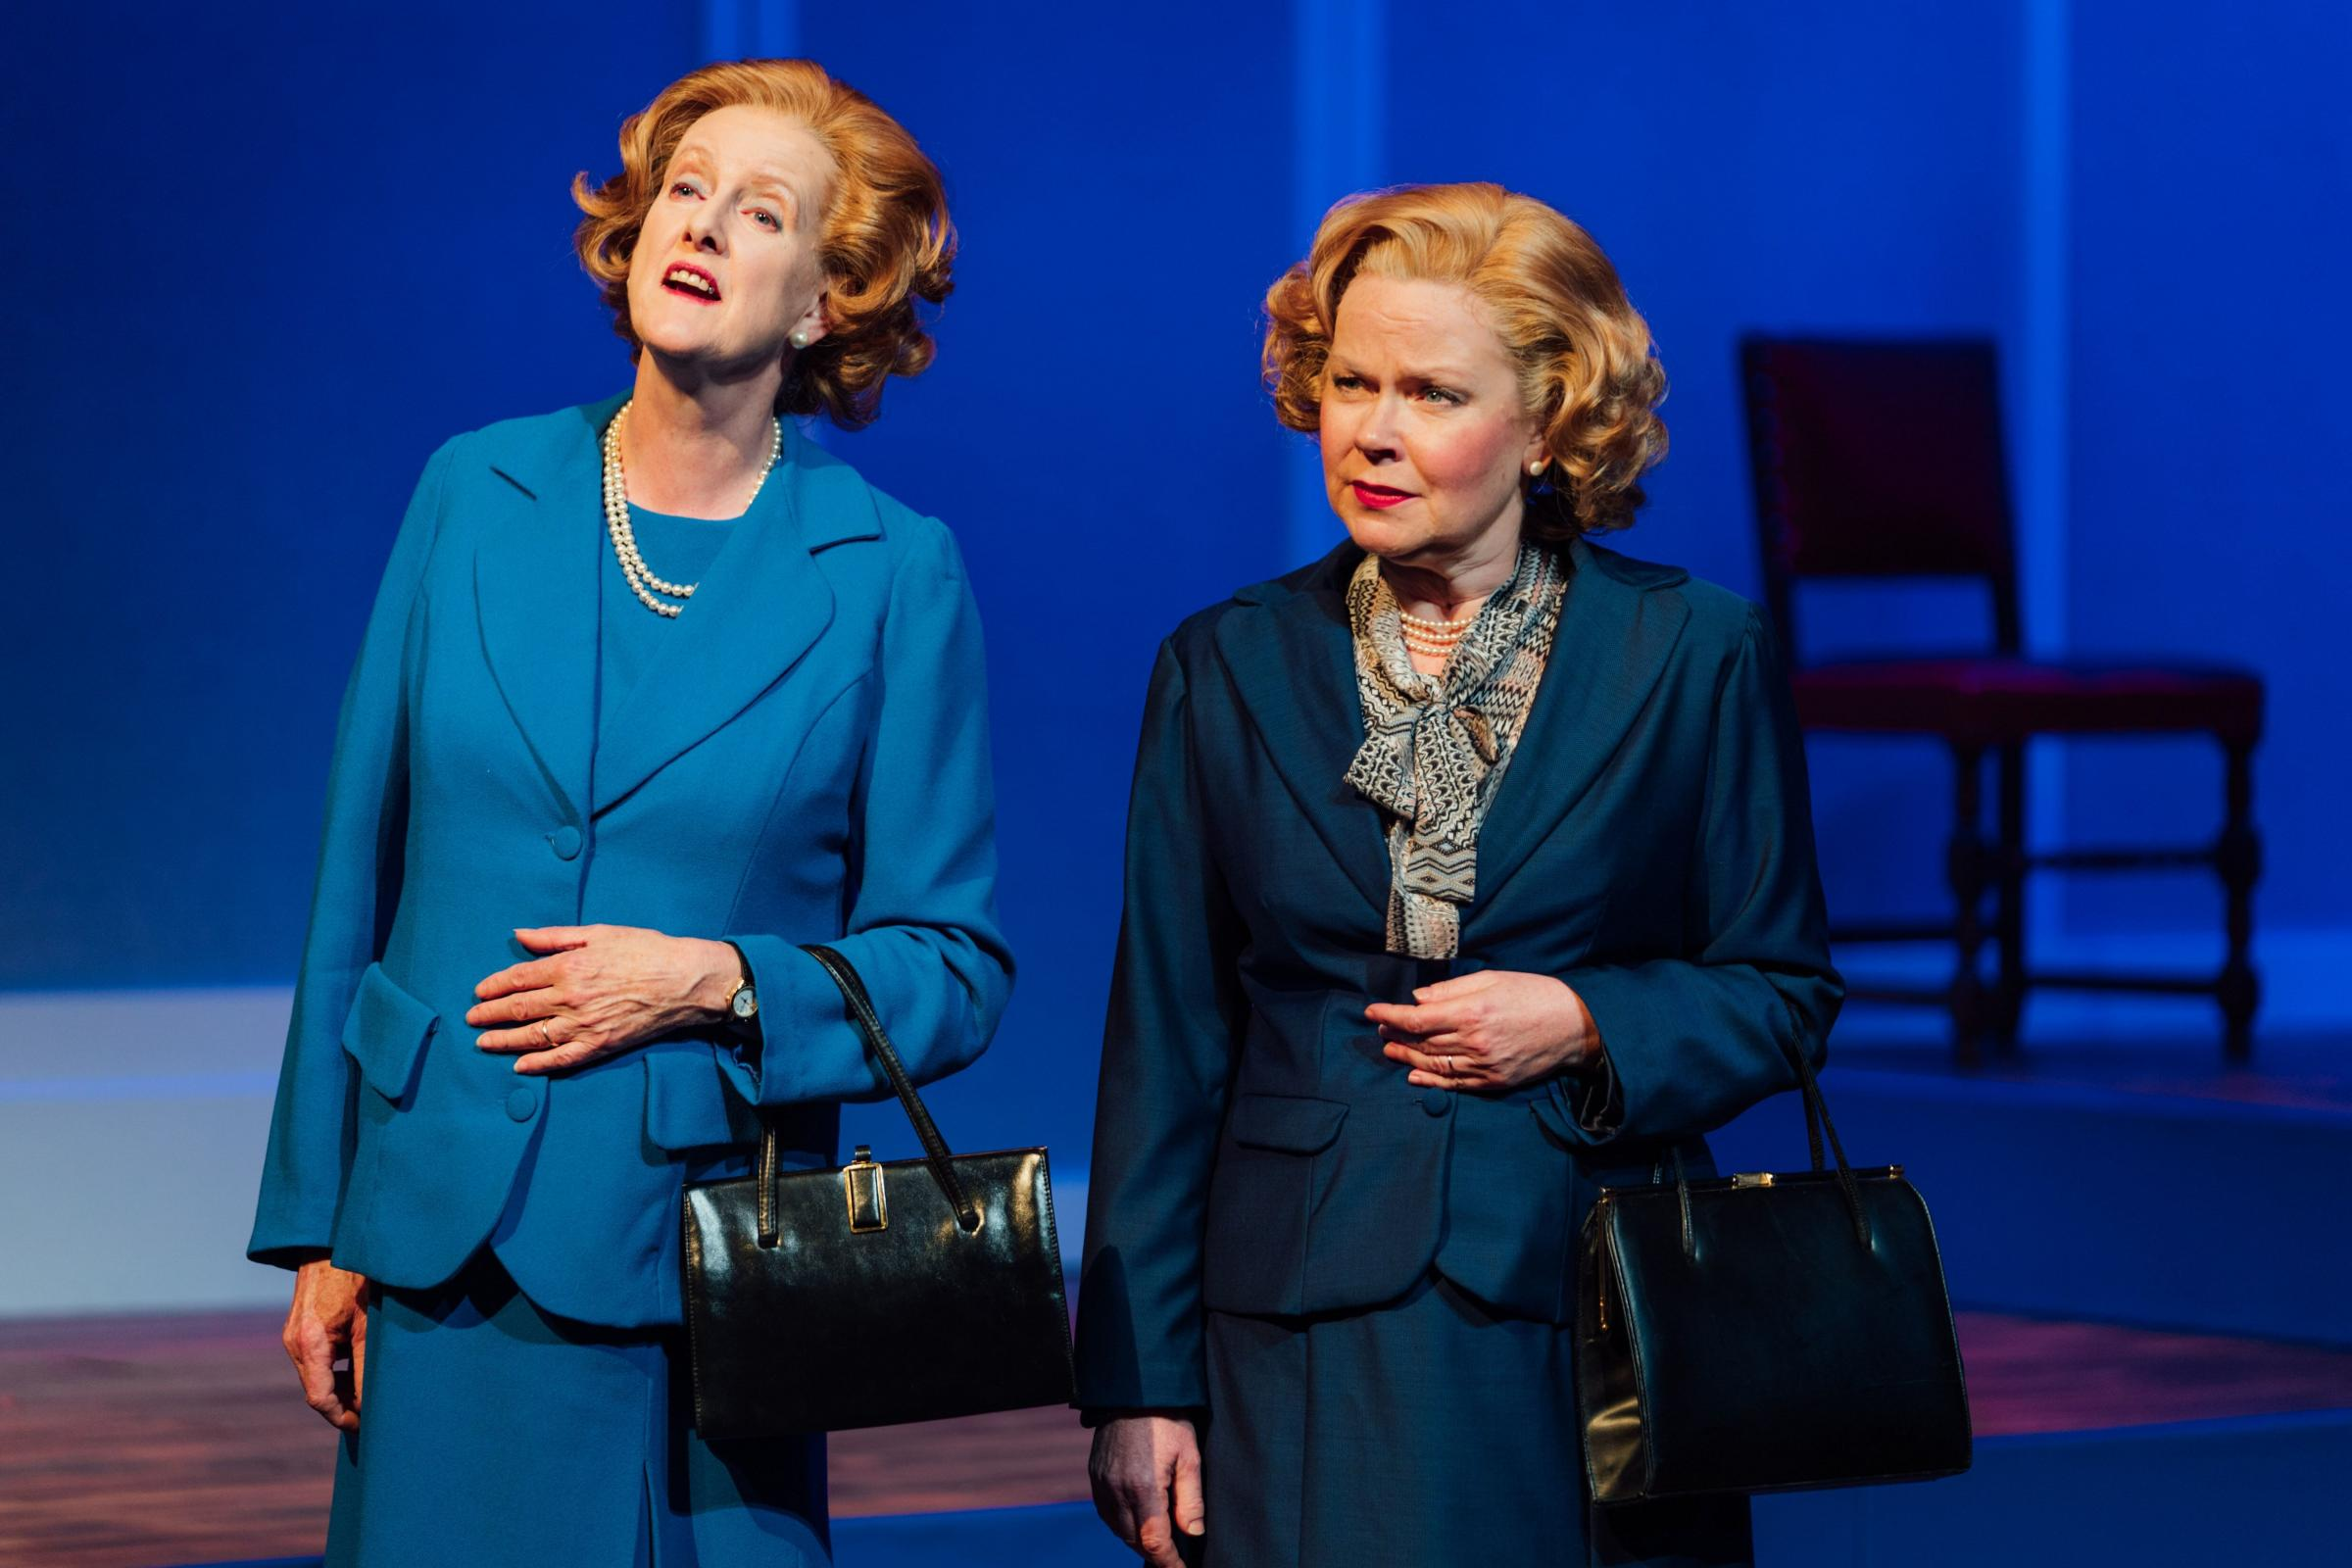 Maggie at the double: Sarah Crowden as T and Eve Matheson as Mags in Handbagged at York Theatre Royal